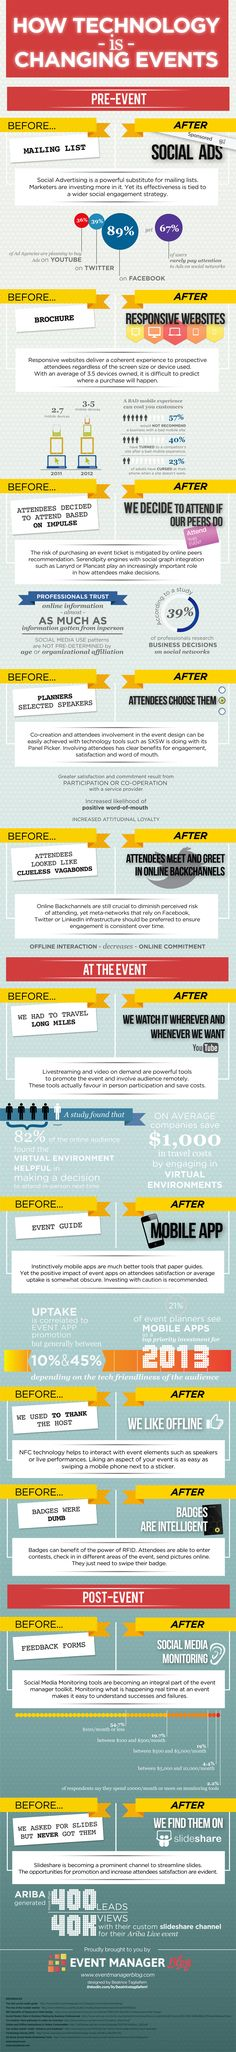 How Social Media And Other Technologies Are Changing Events [INFOGRAPHIC]